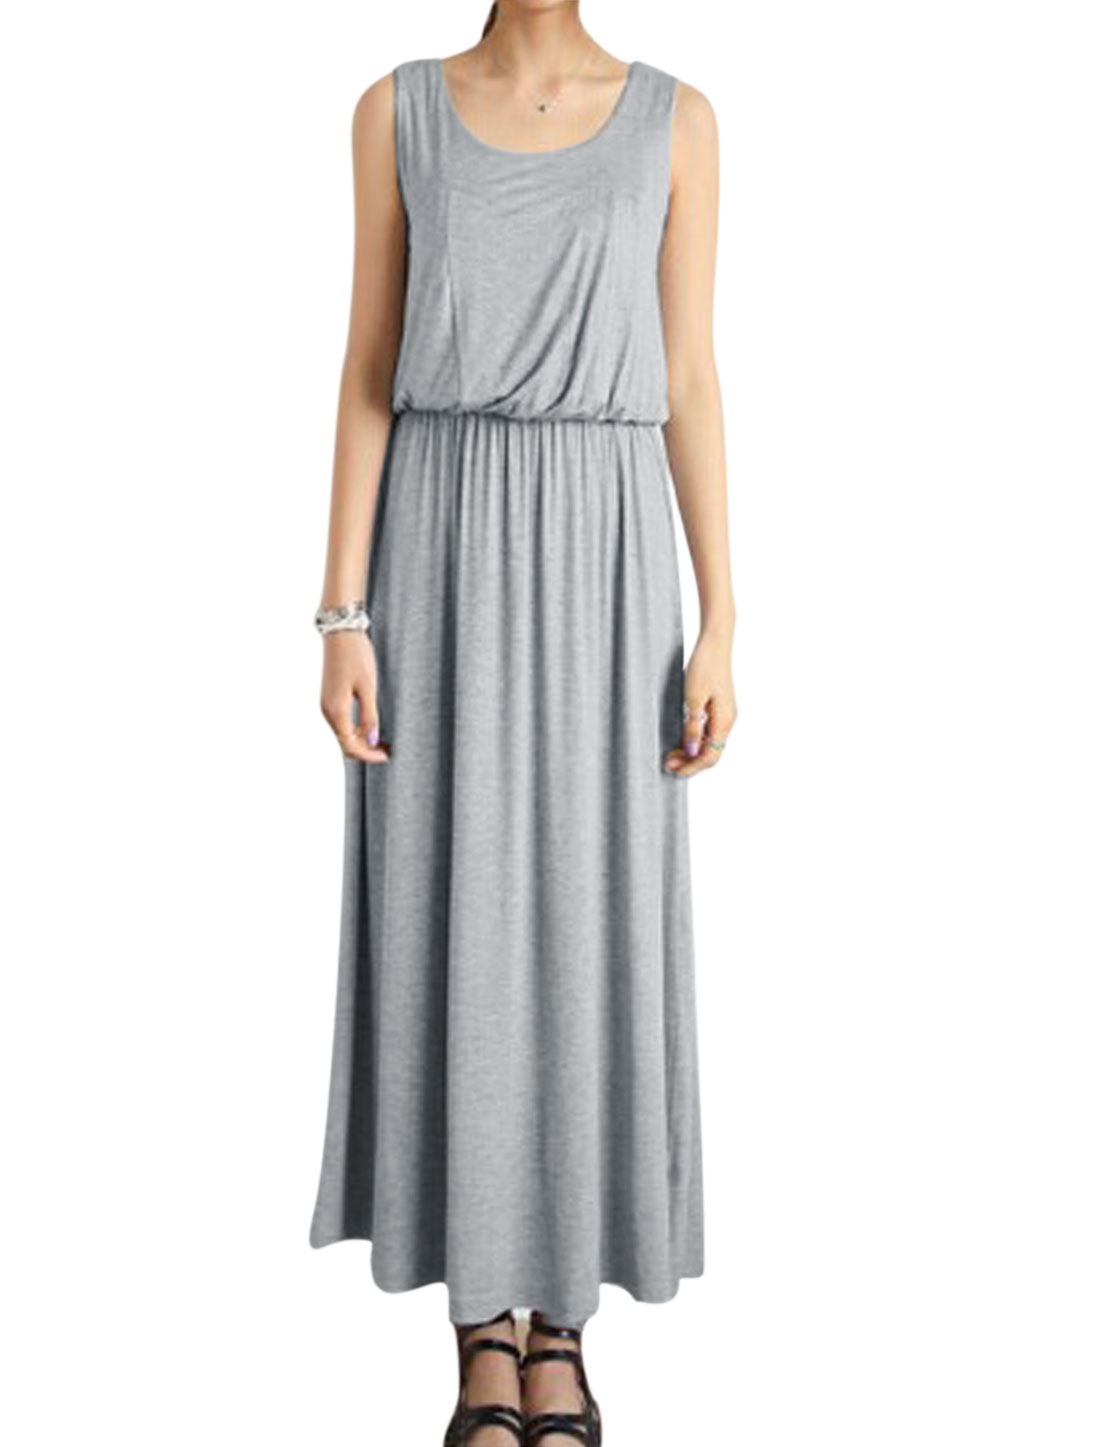 Women Sleeveless Elastic Waist Unlined Maxi Dress Light Gray XS